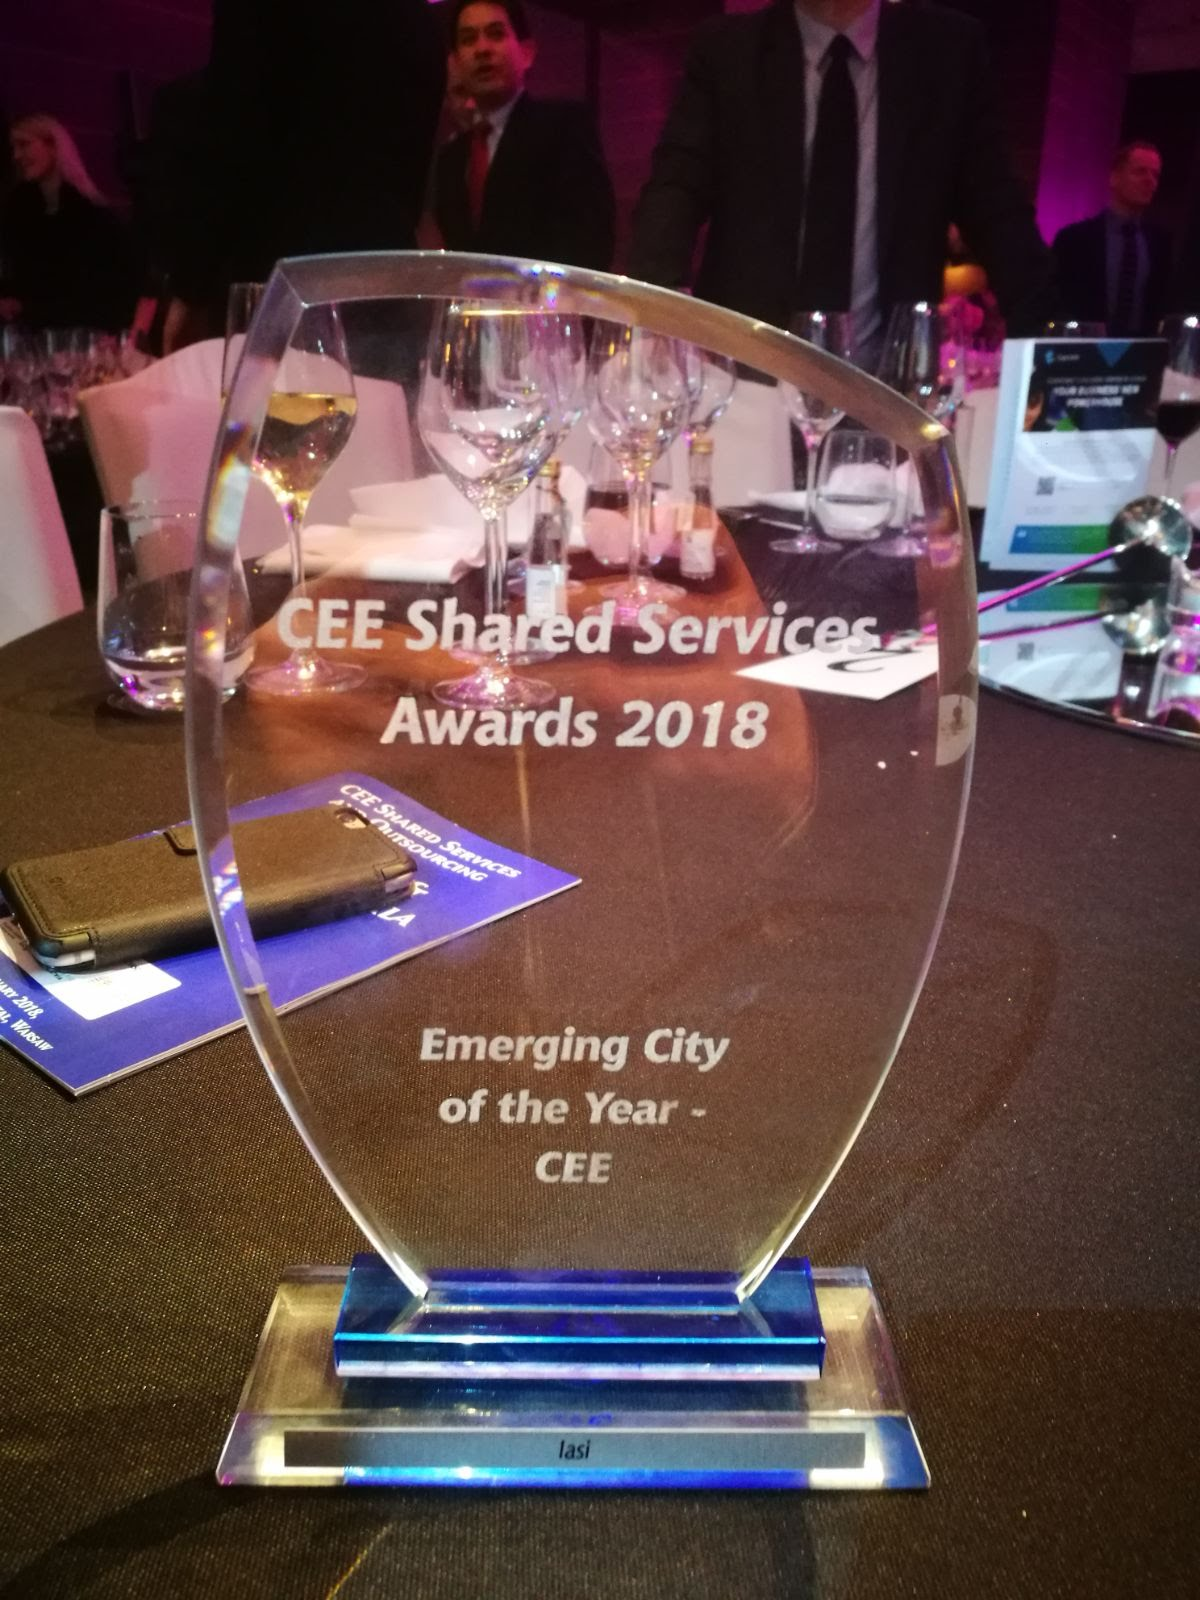 CEE_Shared_Services_and_Outsourcing_Awards_Varsovia_Premiu_Iasi_Emerging_City_7_1_